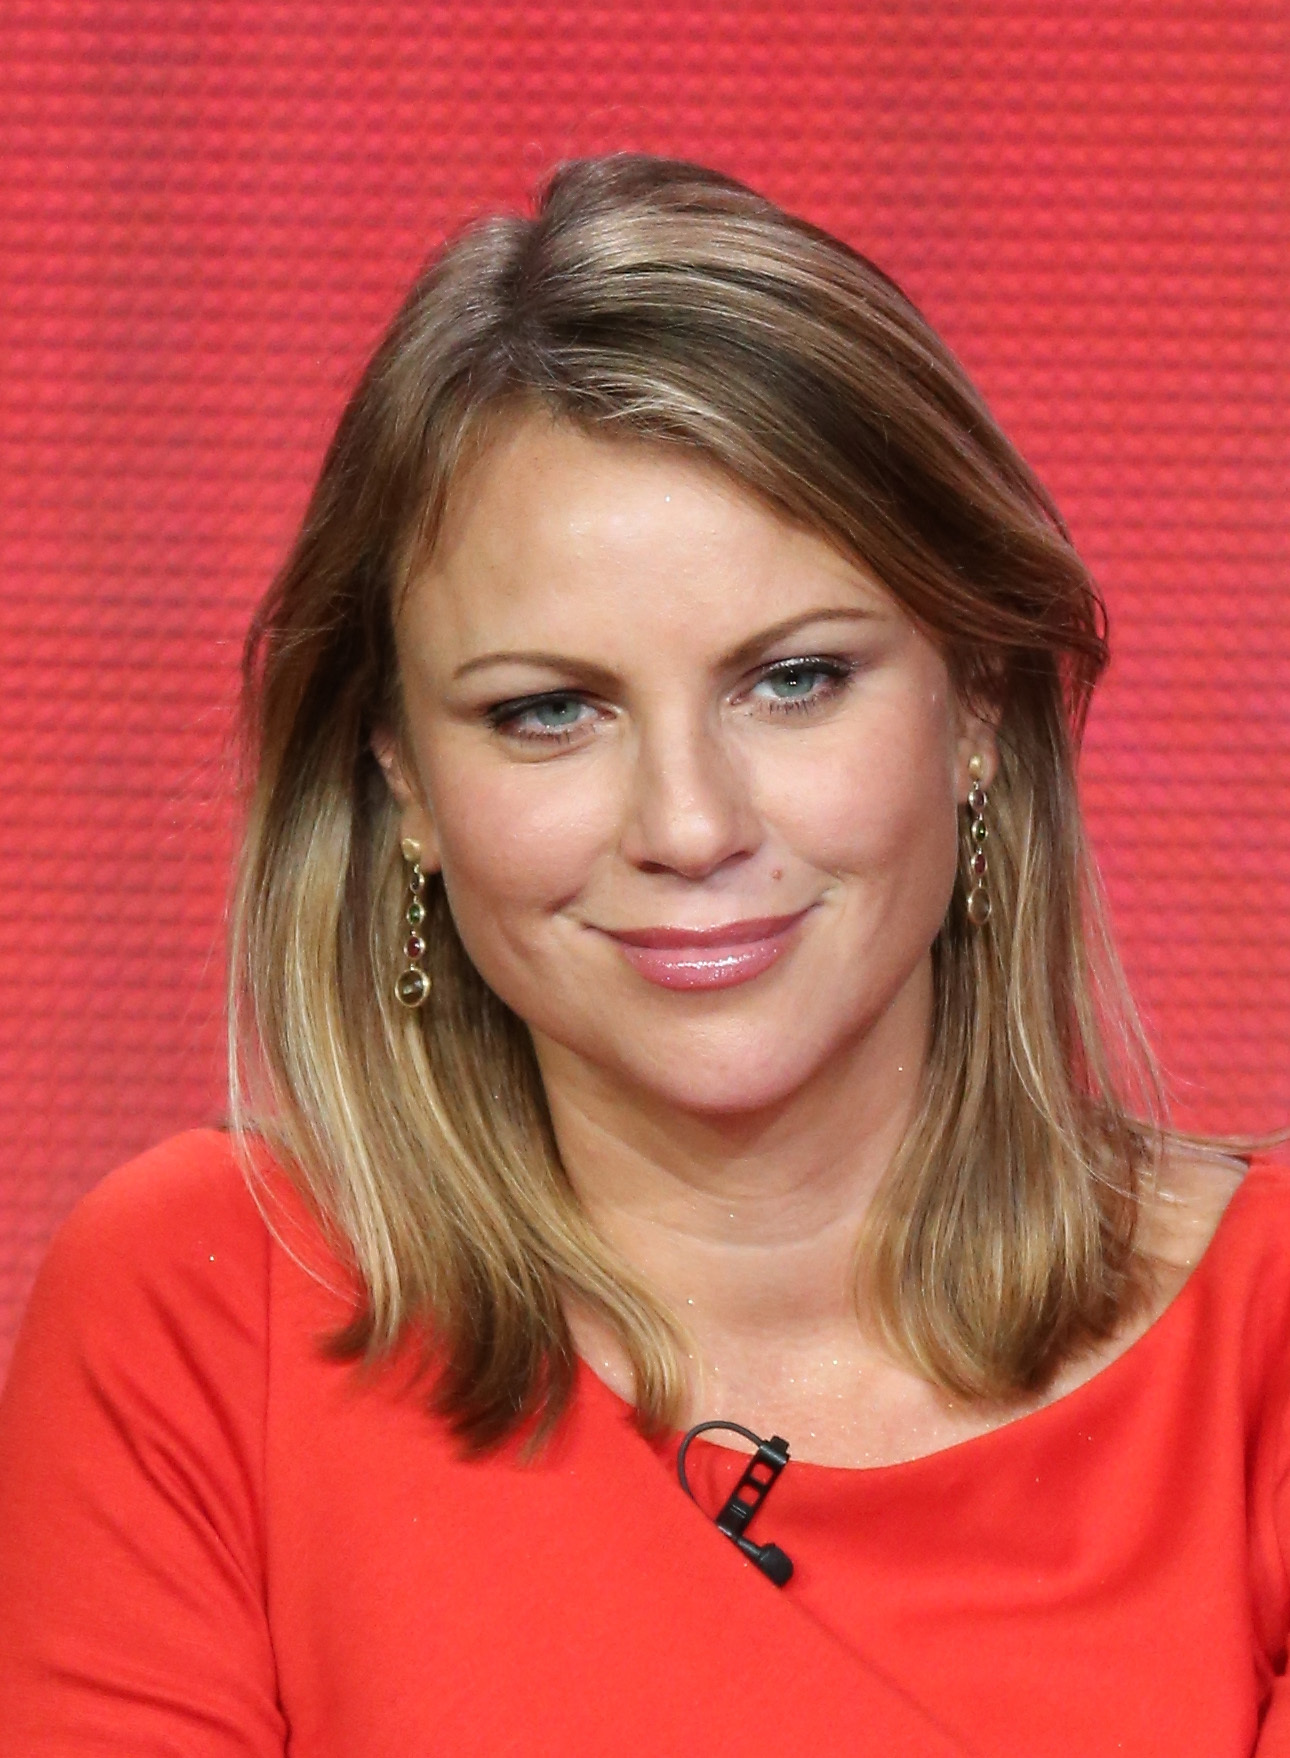 Lara Logan at an event for 60 Minutes Sports (2013)